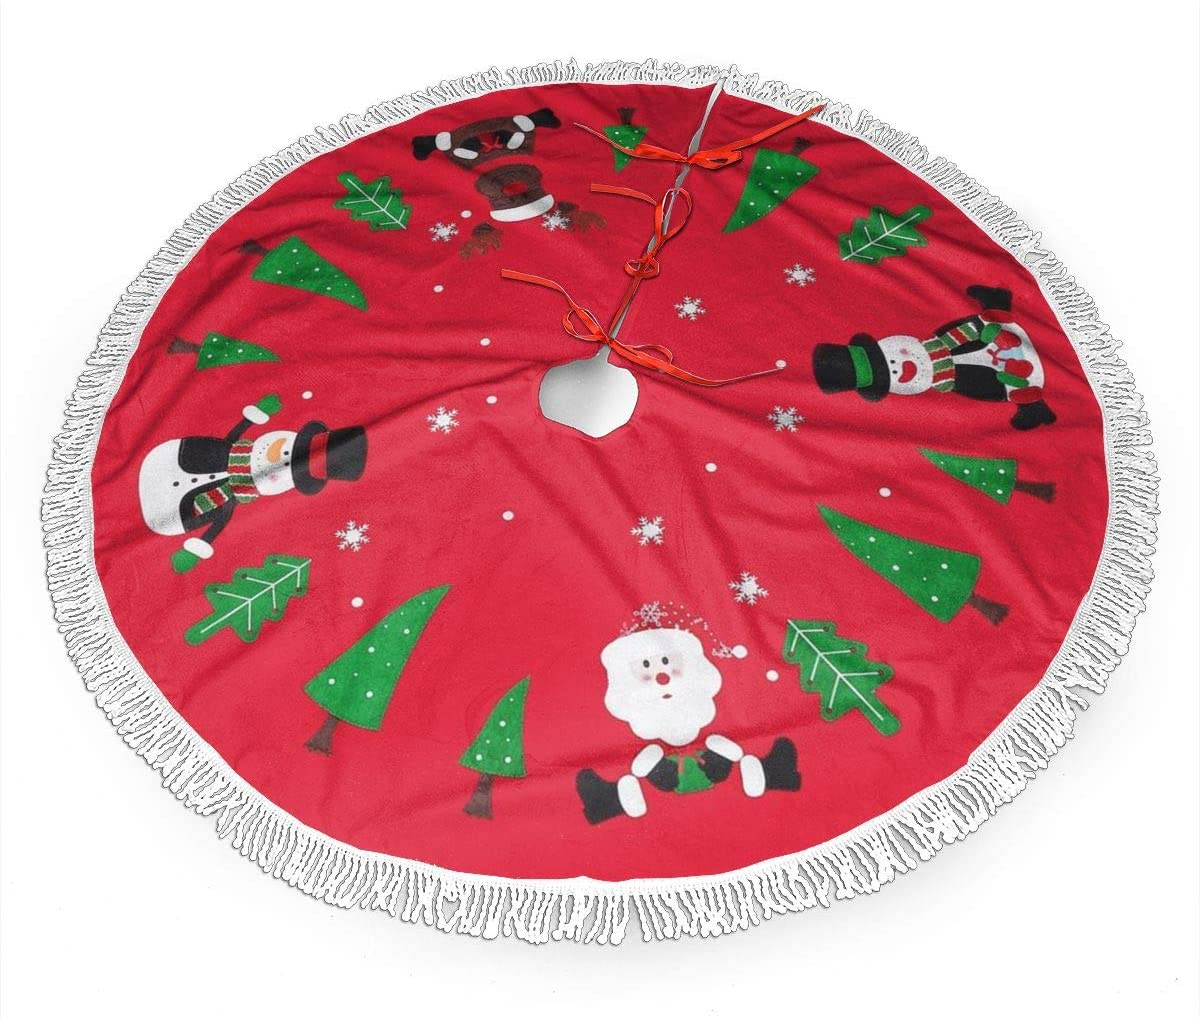 MSGUIDE Christmas Tassel Tree Skirt for Xmas Holiday Party Supplies Large Tree Mat Decor Halloween Ornaments Reindeer Snowman